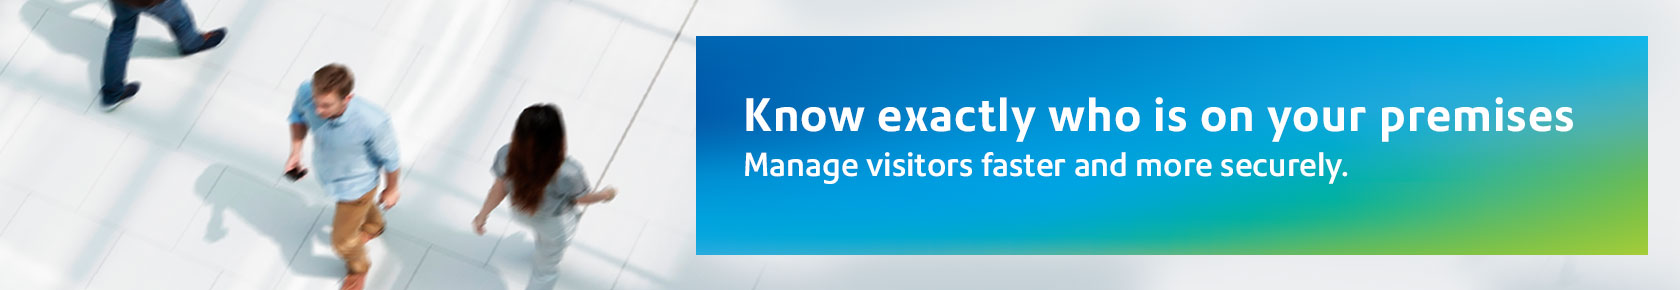 pbLobbyTrac, LobbyTrac, visitor management, Pitney Bowes, sign-in system, manage visitors, track visitors, visitor entry system